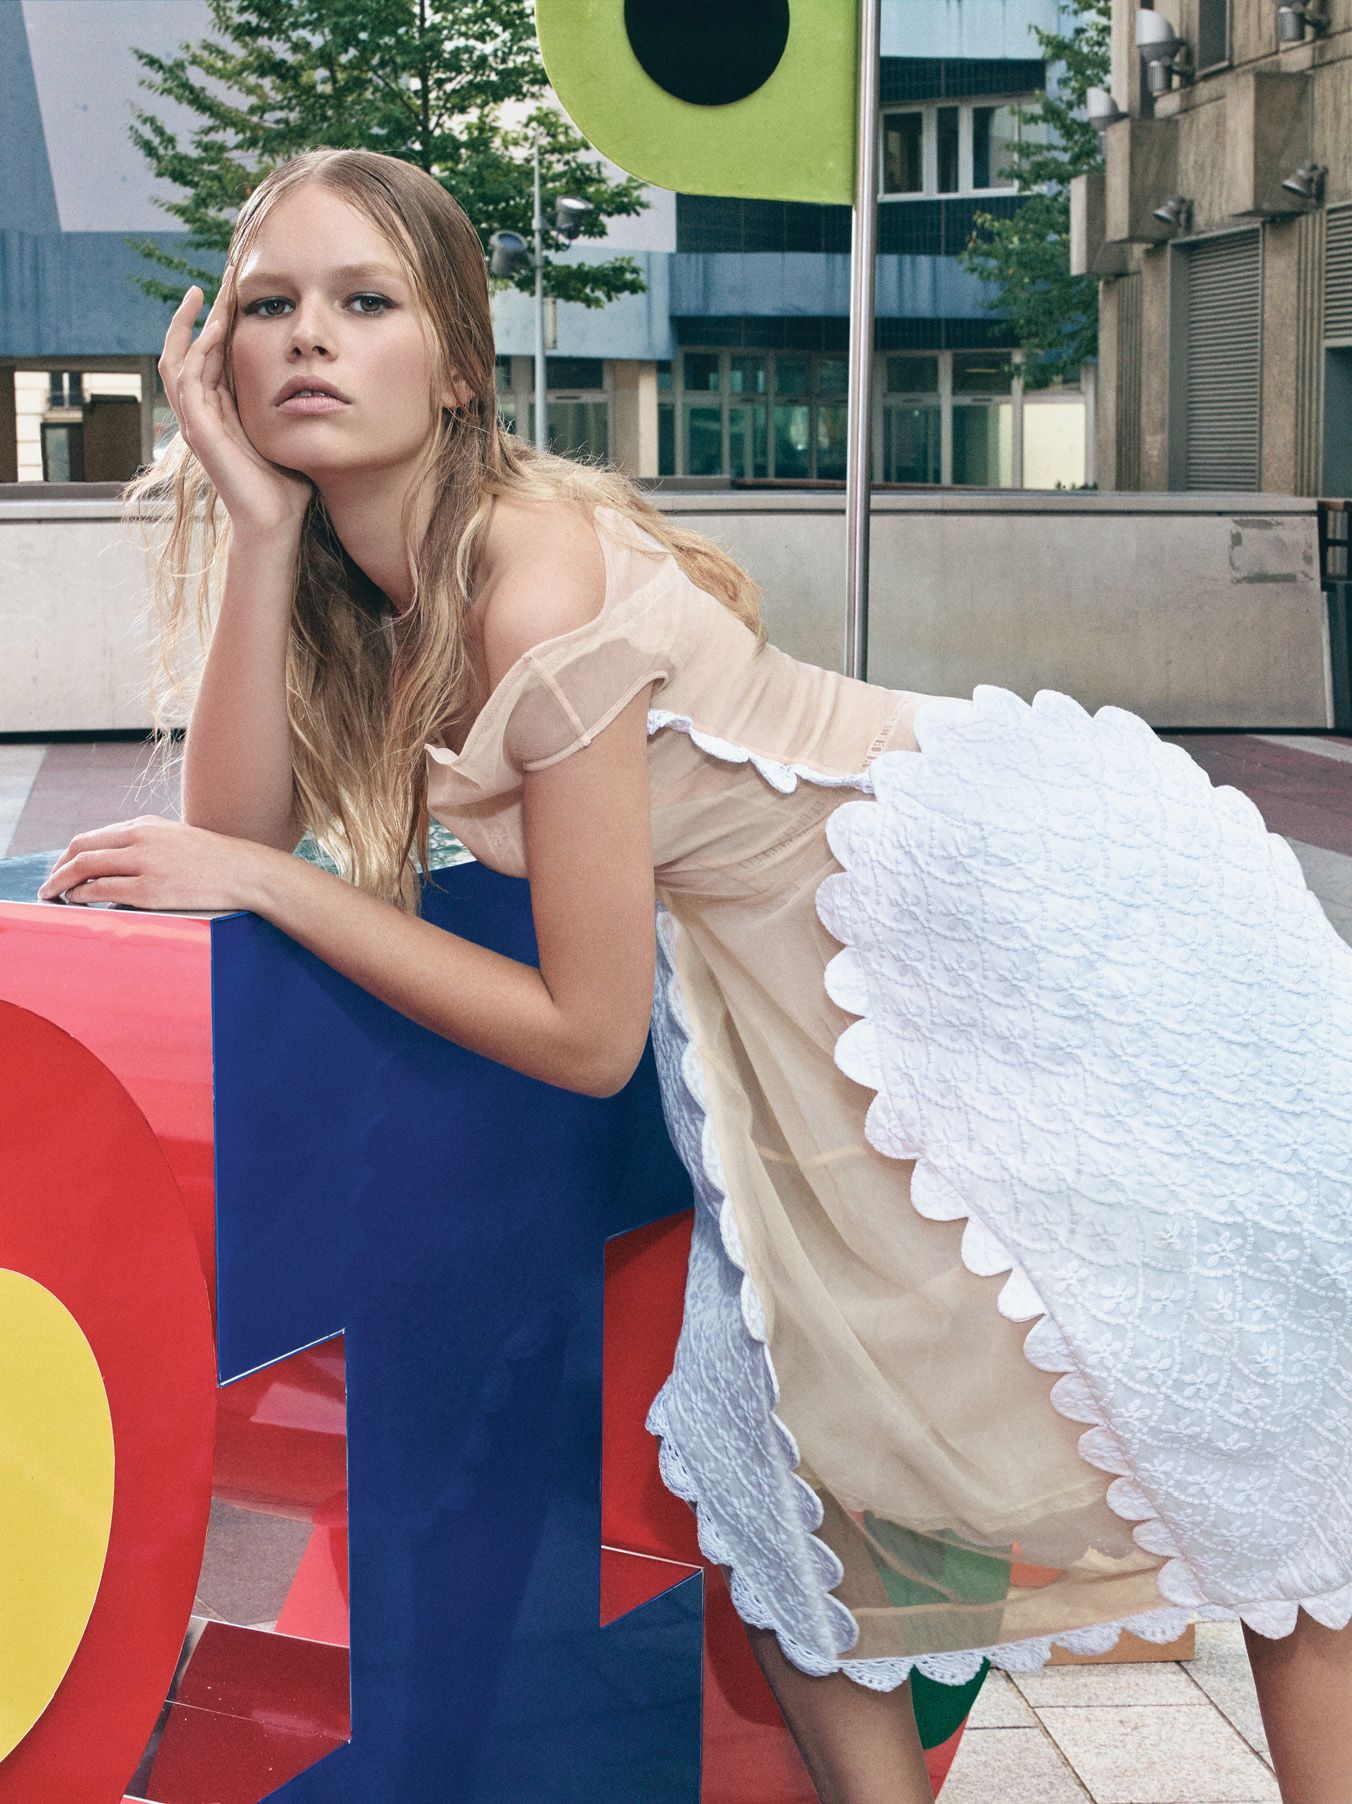 a0275068636 Anna Paris - The Model Anna Ewers. The coolest looks for spring. The  chicest city in the world. Do we really need to spell it out for you